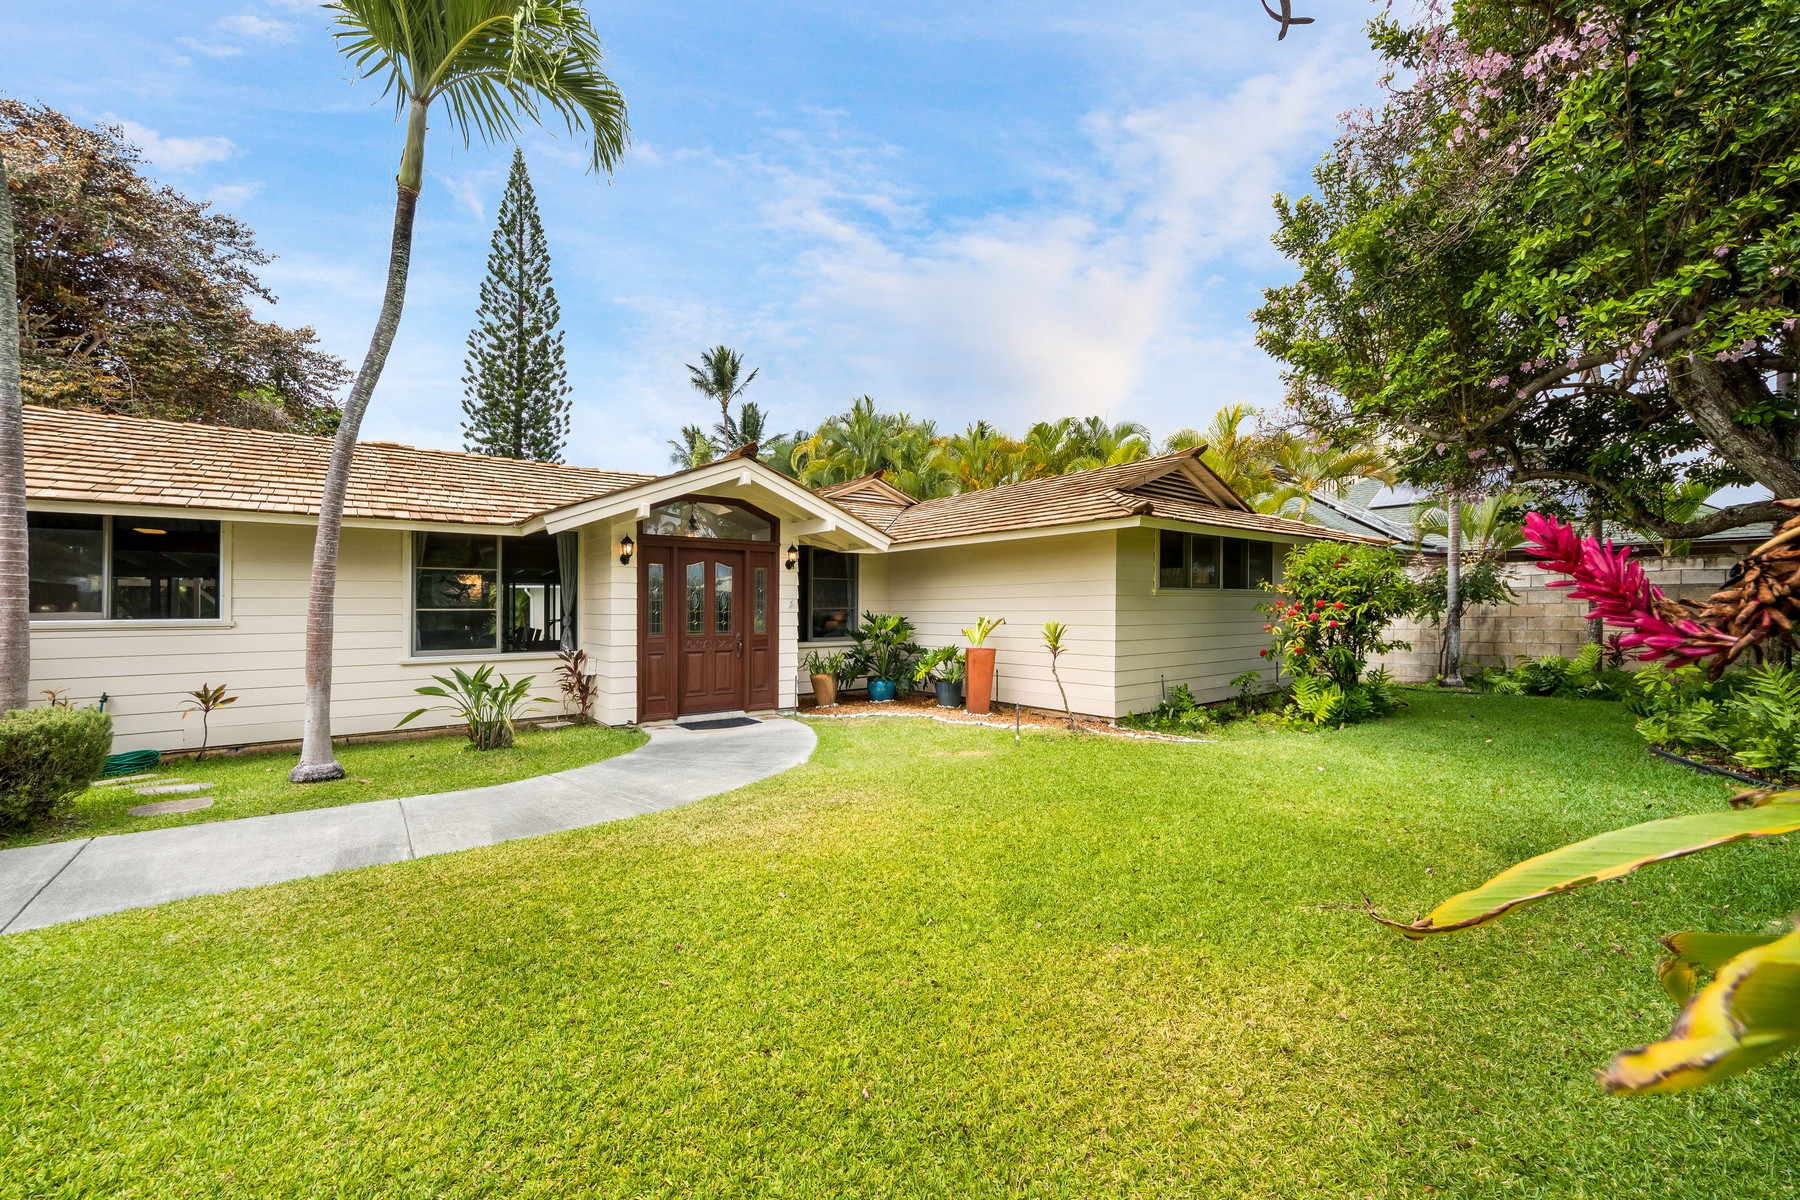 Single Family Home for Sale at Kuulei Tract Beauty 106 S Kainalu Dr Kailua, Hawaii 96734 United States